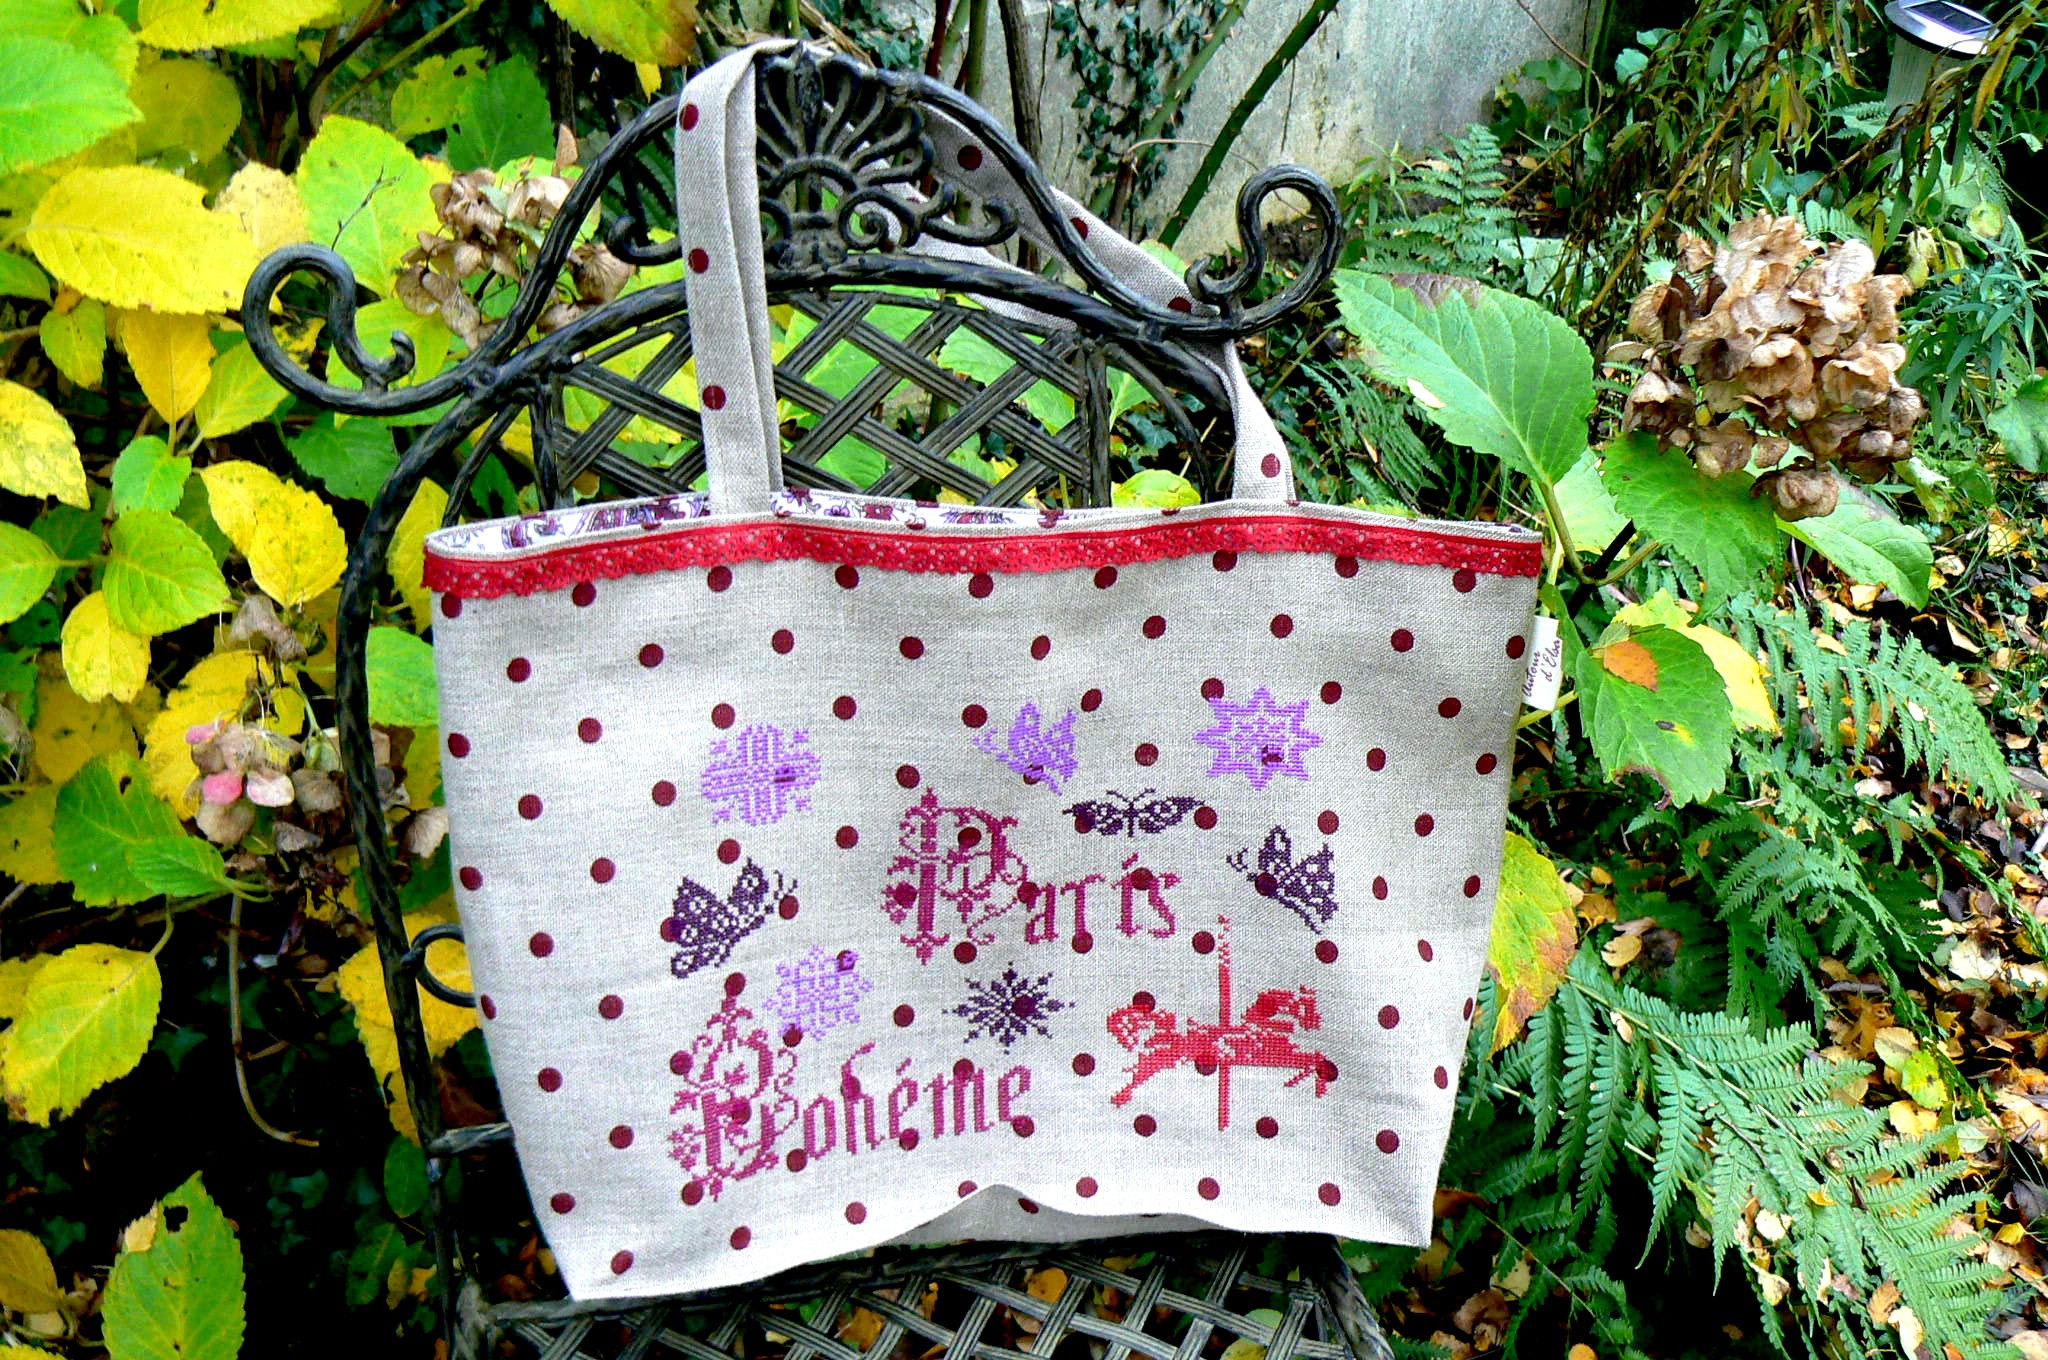 SAC BRODE POINT DE CROIX PARIS BOHEME